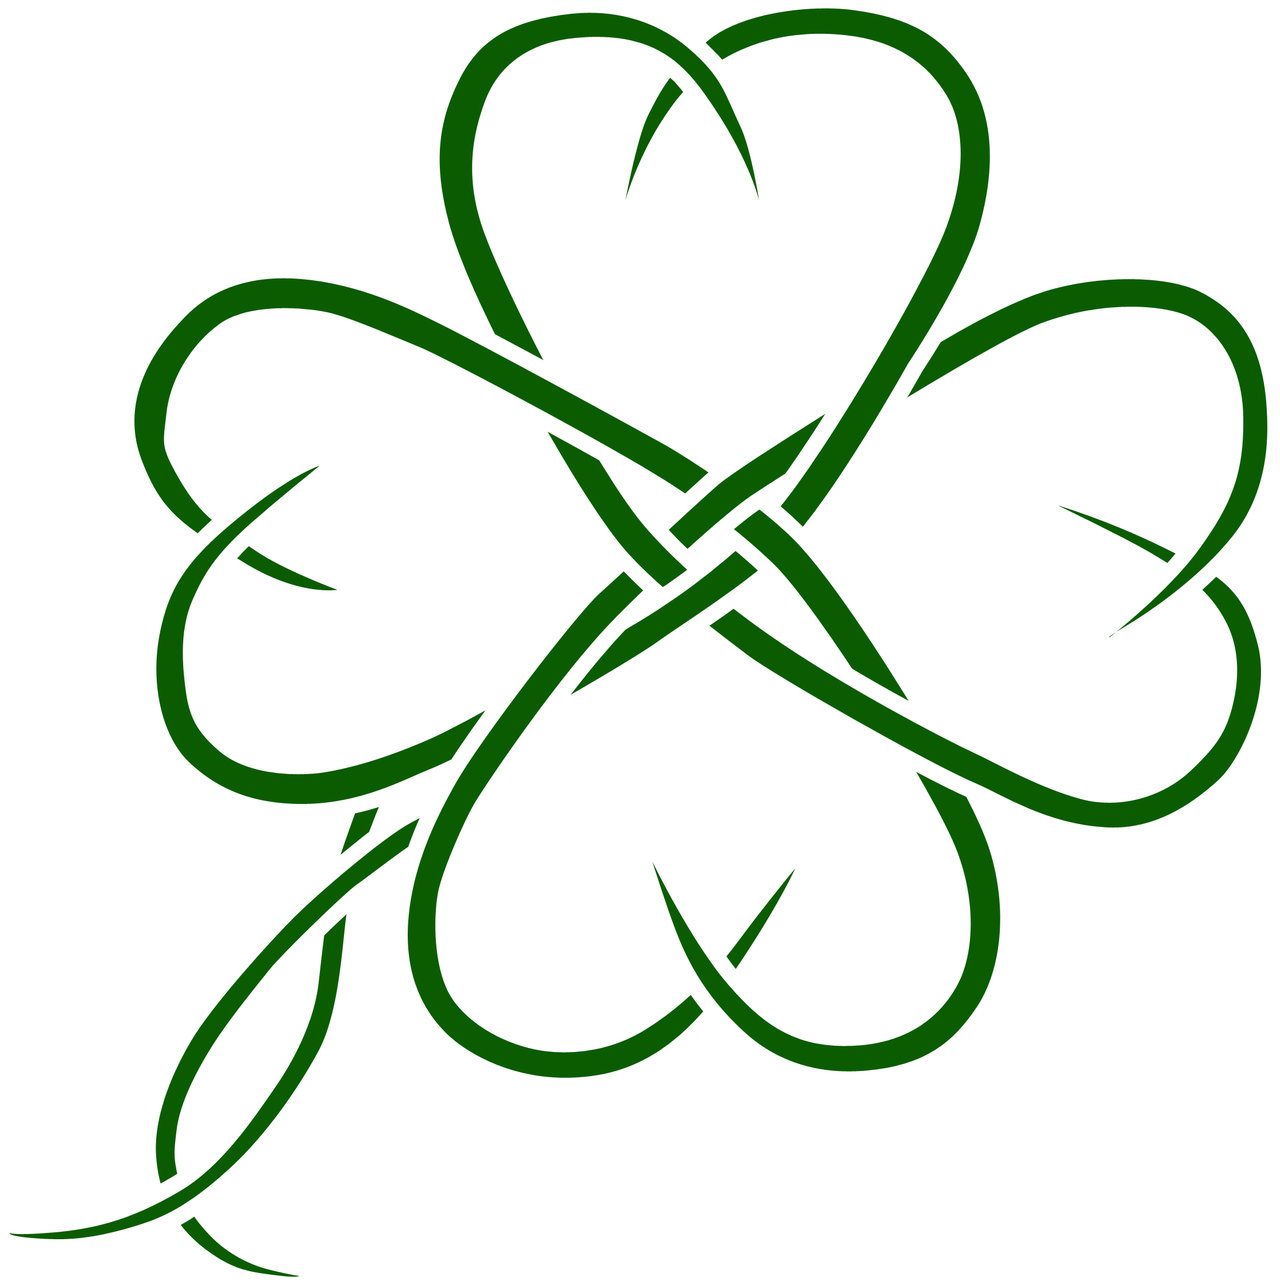 My Tattoo Designs Clover Tattoos For Women Ideas And Designs